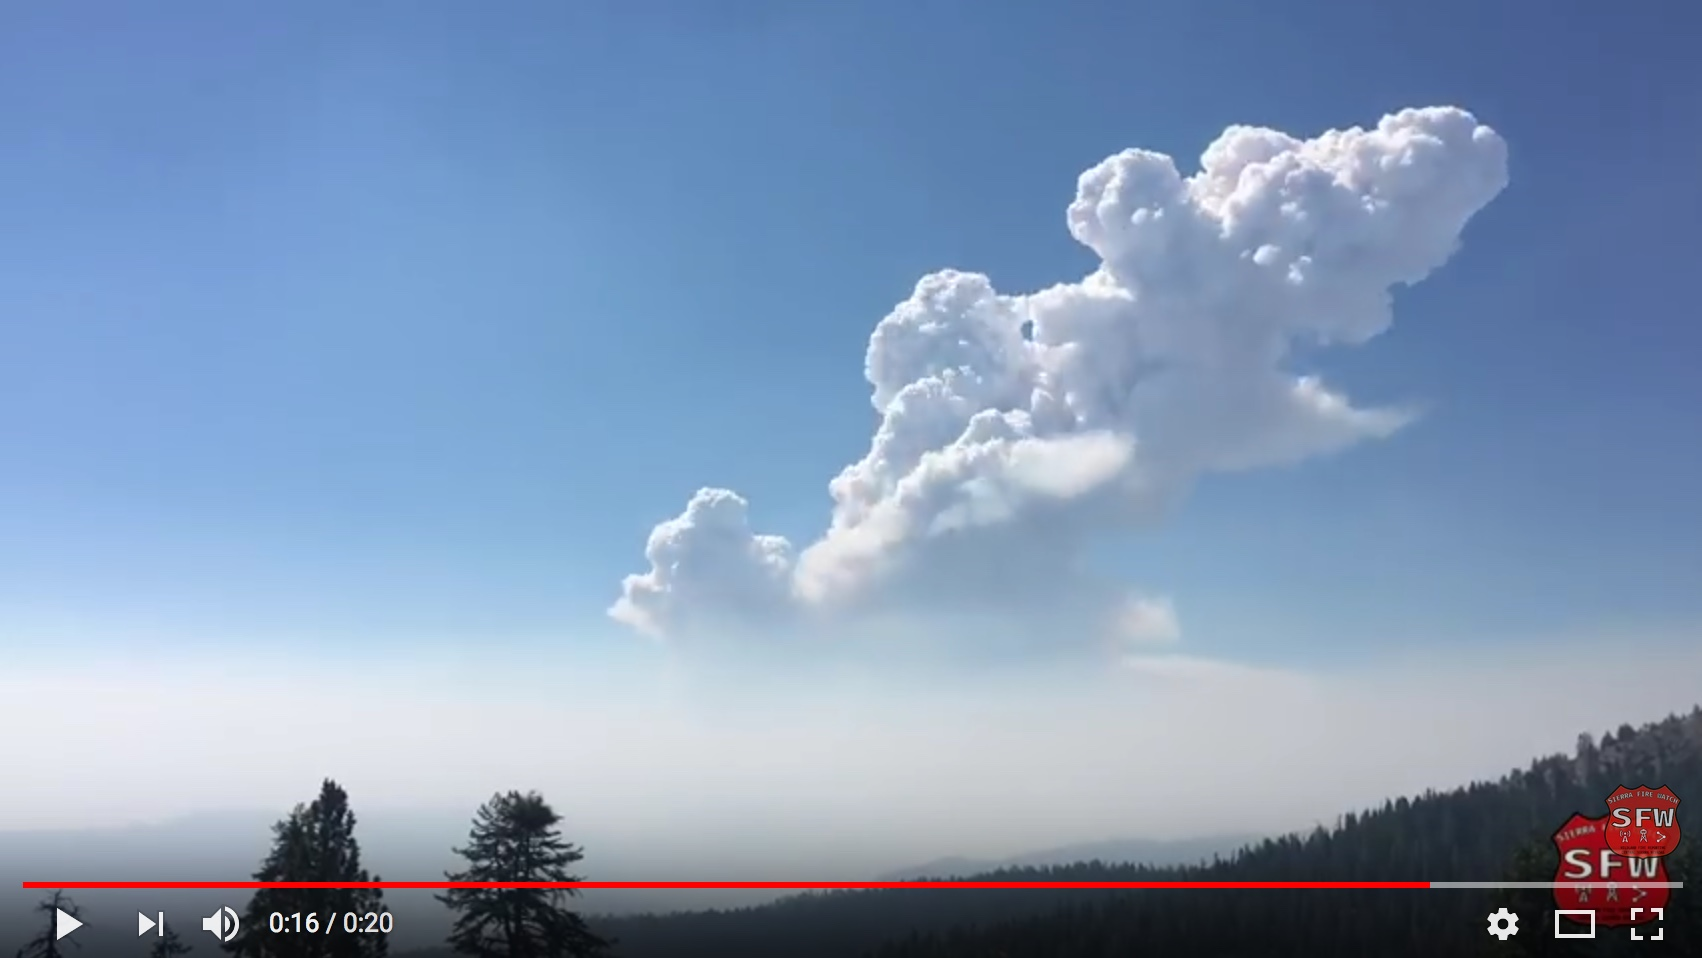 Time lapse [click to play YouTube video]